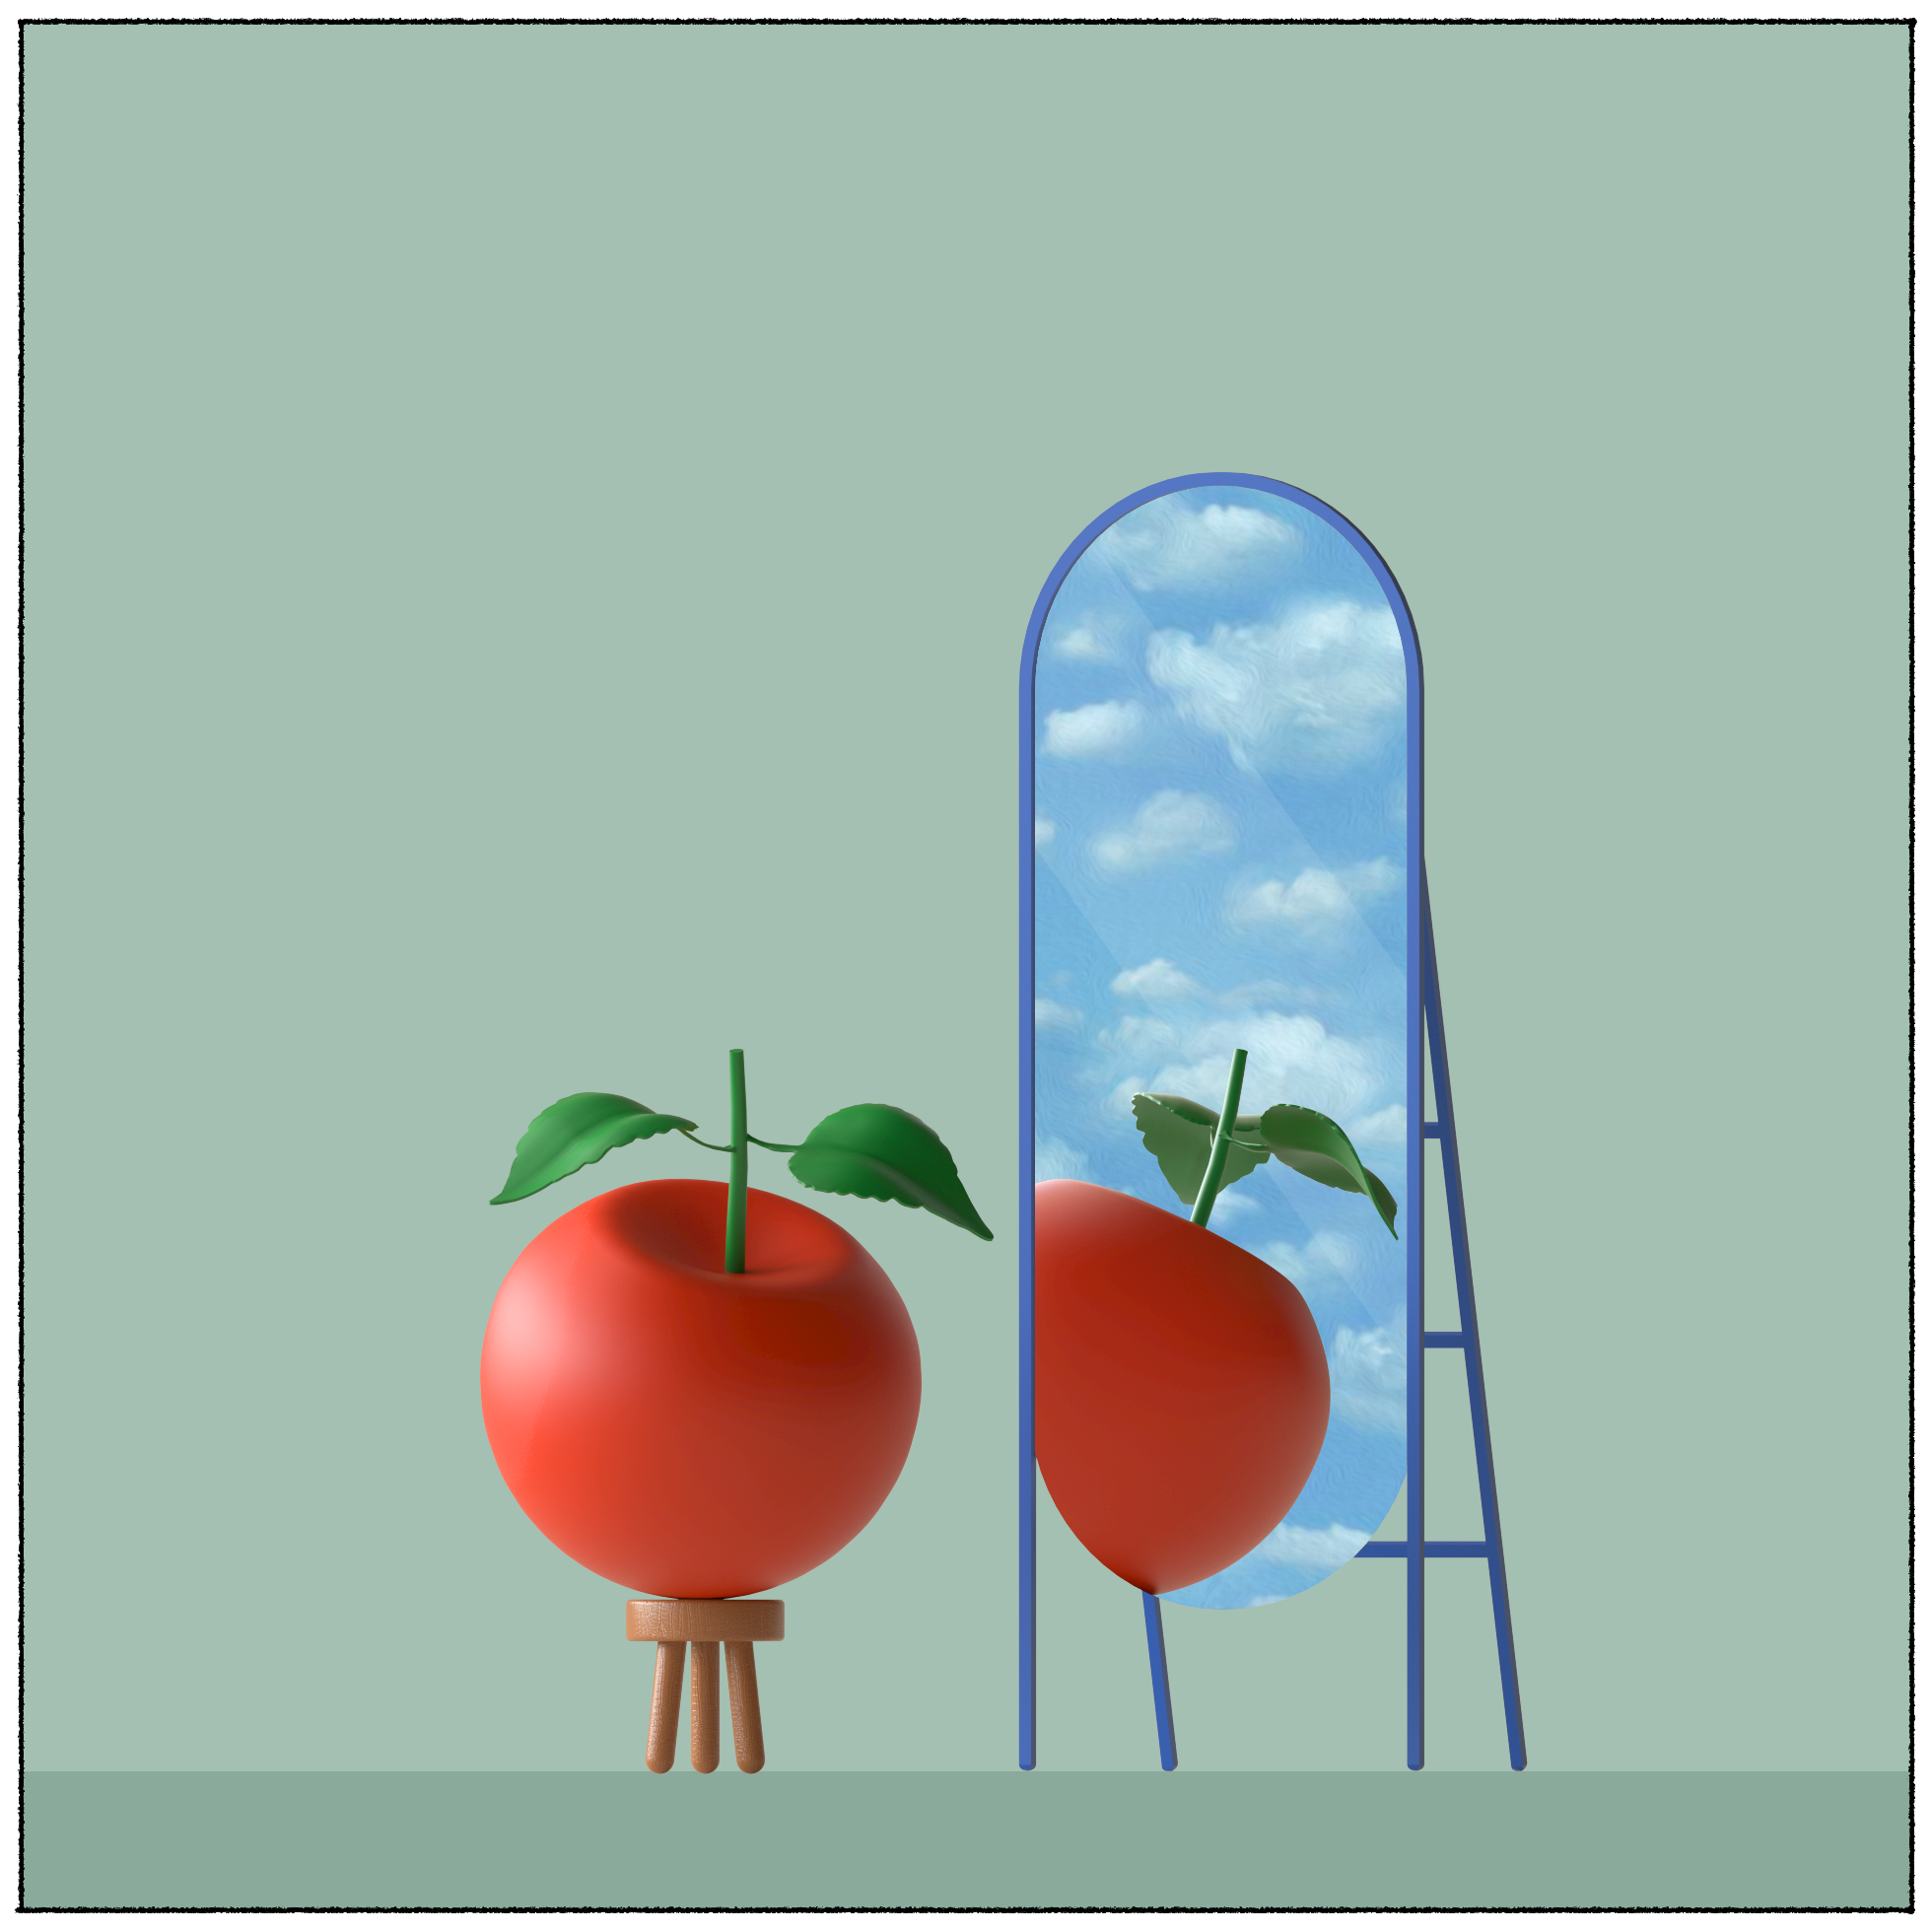 Mirror_Apple_02.png